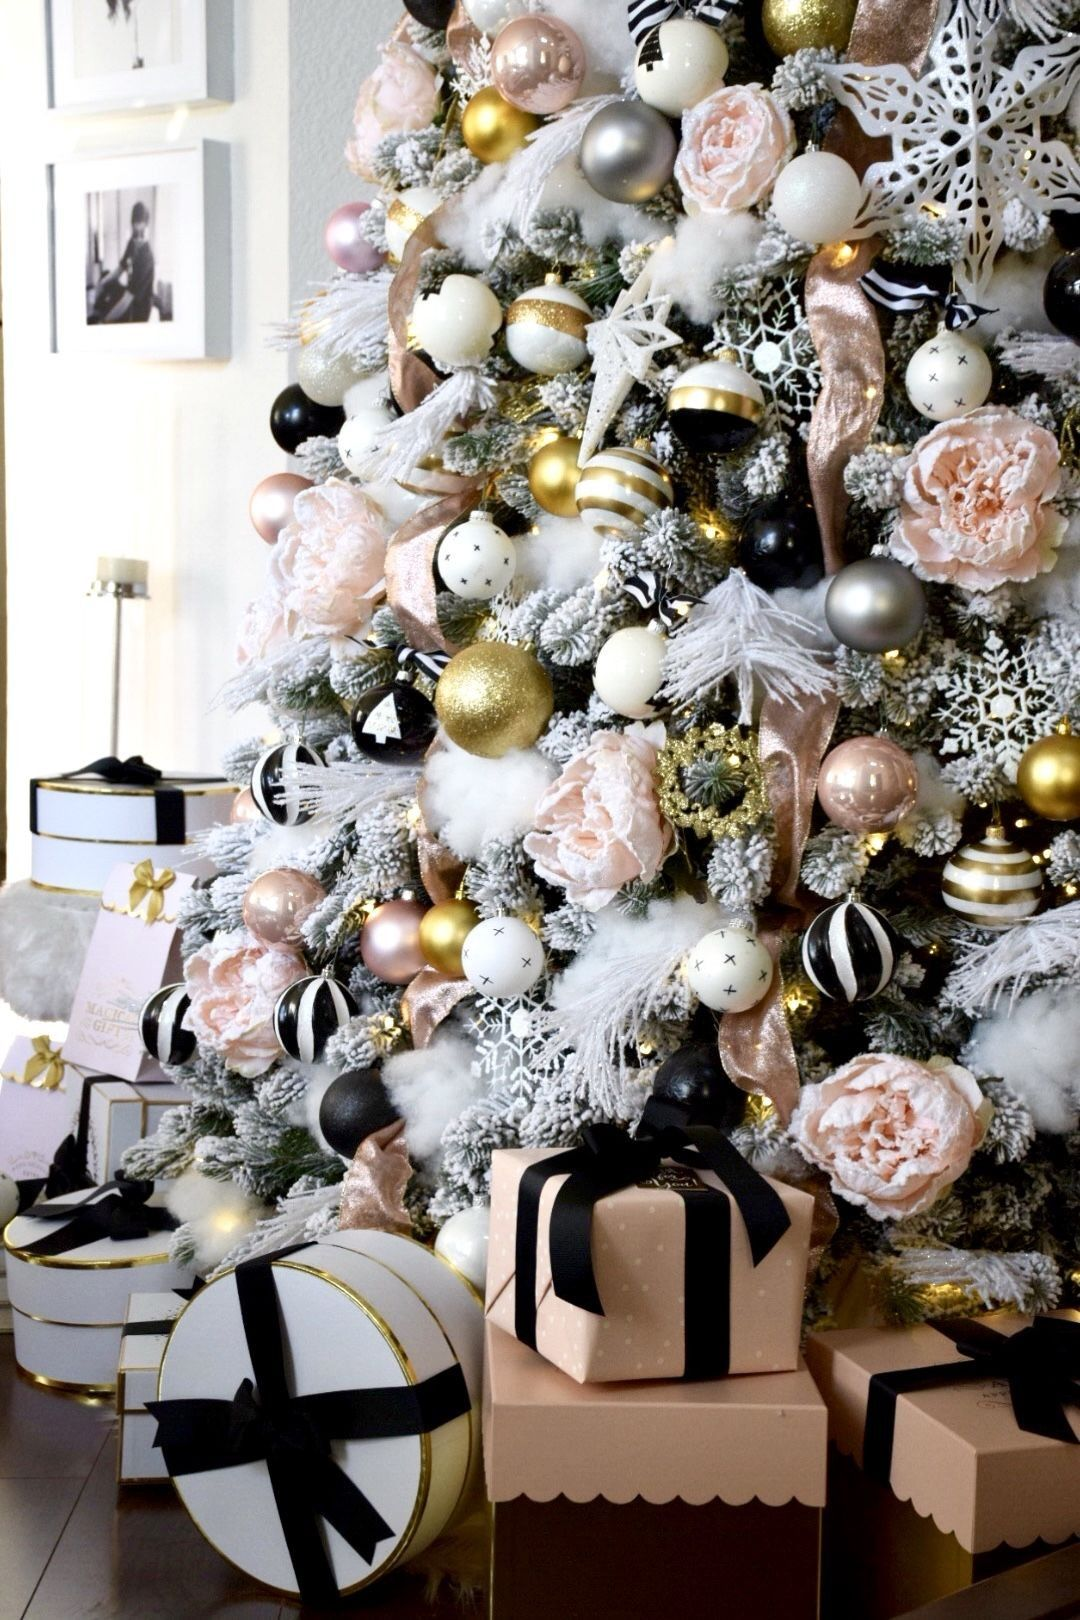 Christmas Tree Decor Trend 2020 Best Christmas Tree Ideas for 2019   TrendBook Trend Forecasting